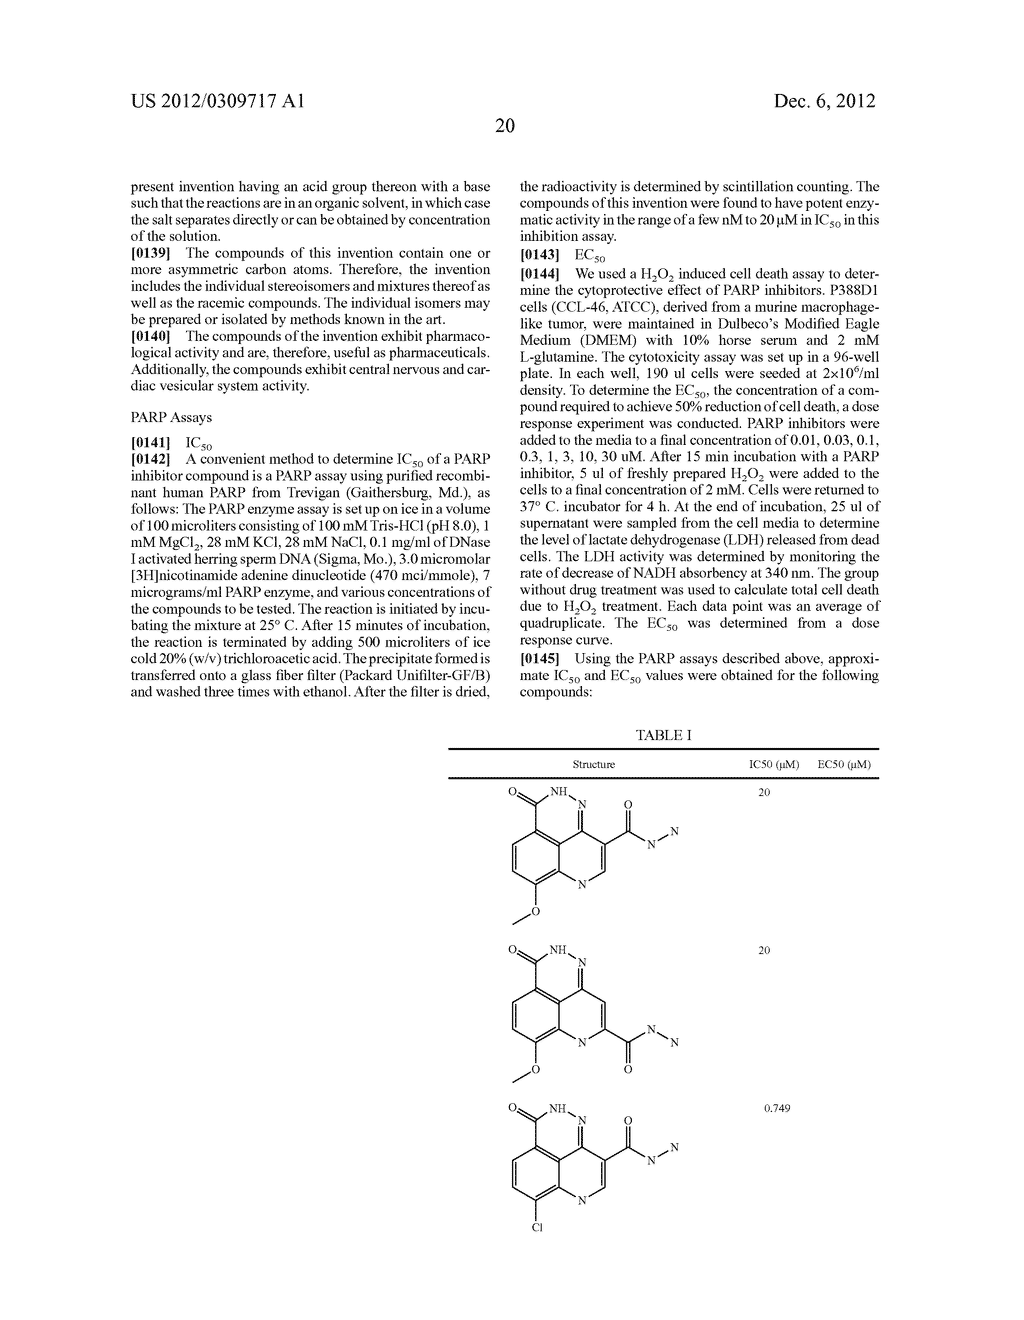 COMPOUNDS, METHODS AND PHARMACEUTICAL COMPOSITIONS FOR INHIBITING PARP - diagram, schematic, and image 22